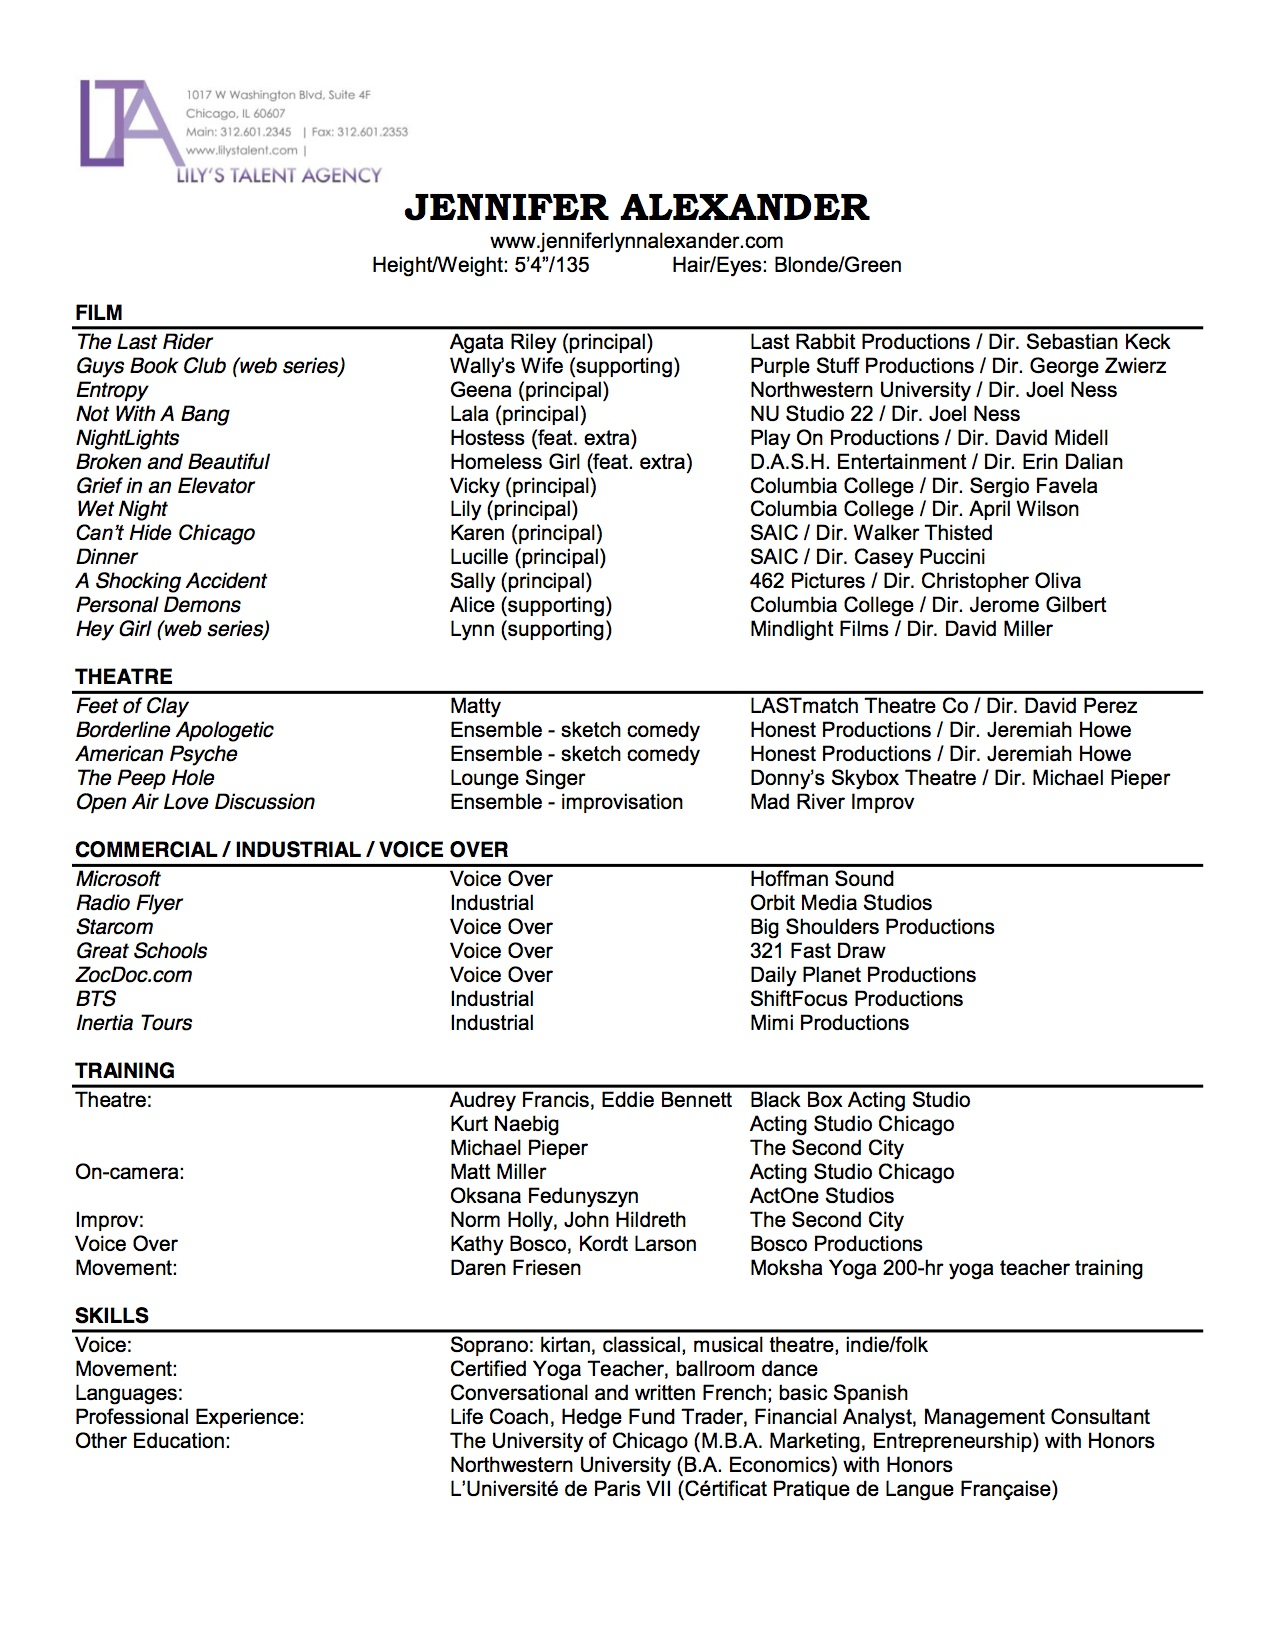 Resume Jennifer Alexander Actress Voice Artist